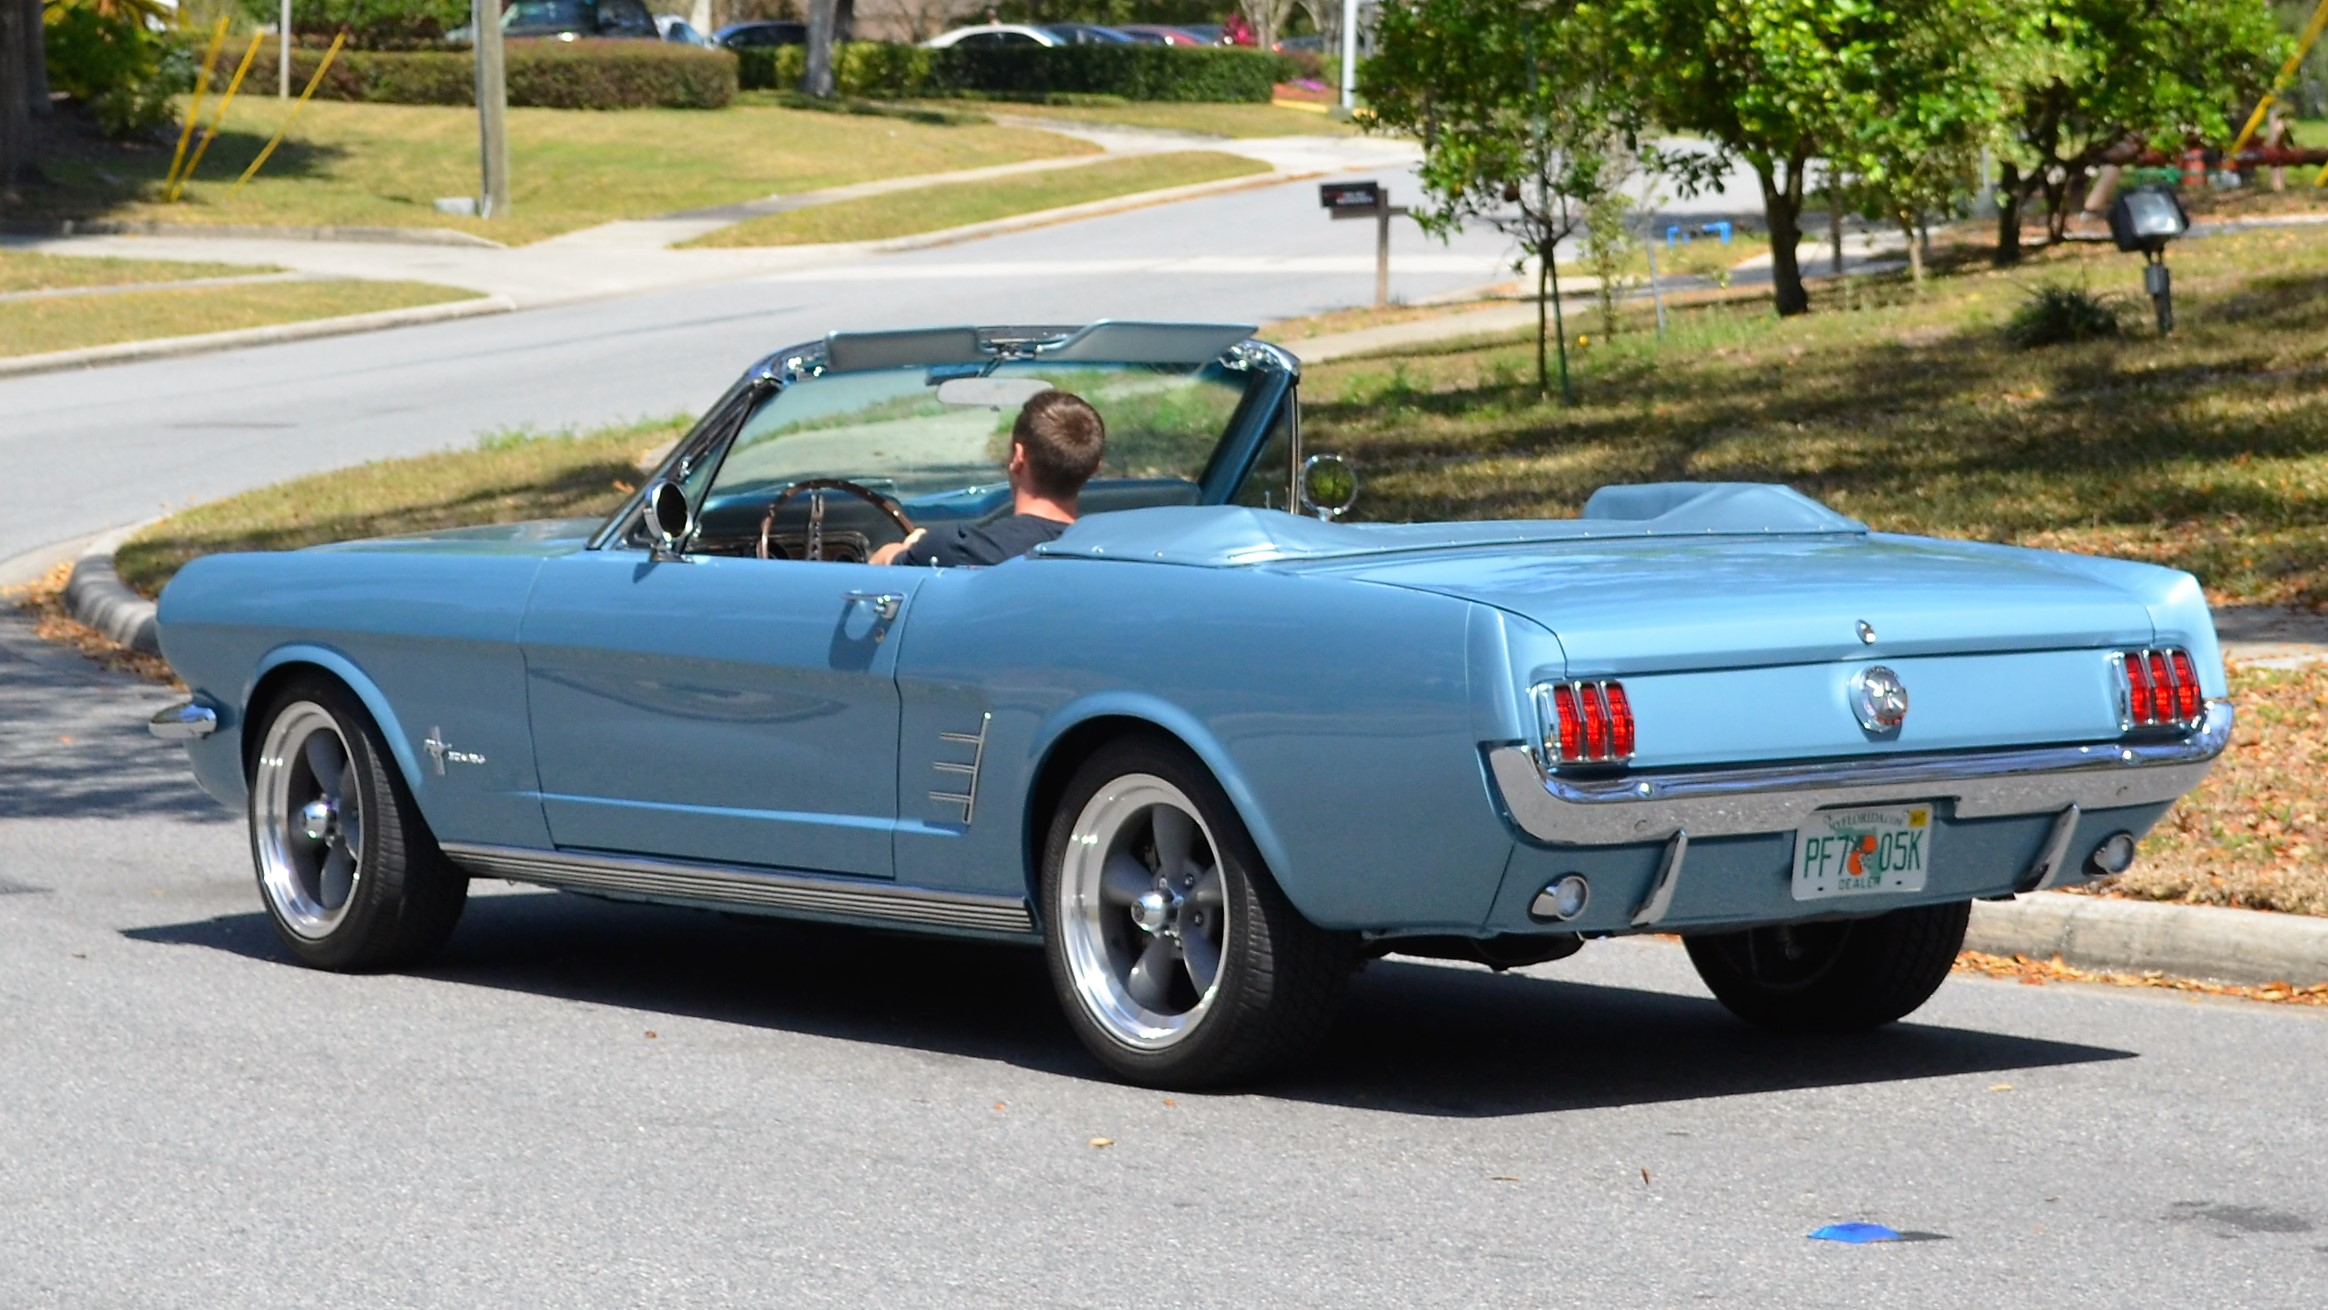 Ford Mustang Gt Convertible 2017 >> REVOLOGY CARS: MODERN VINTAGE MUSTANGS! - Car Guy Chronicles